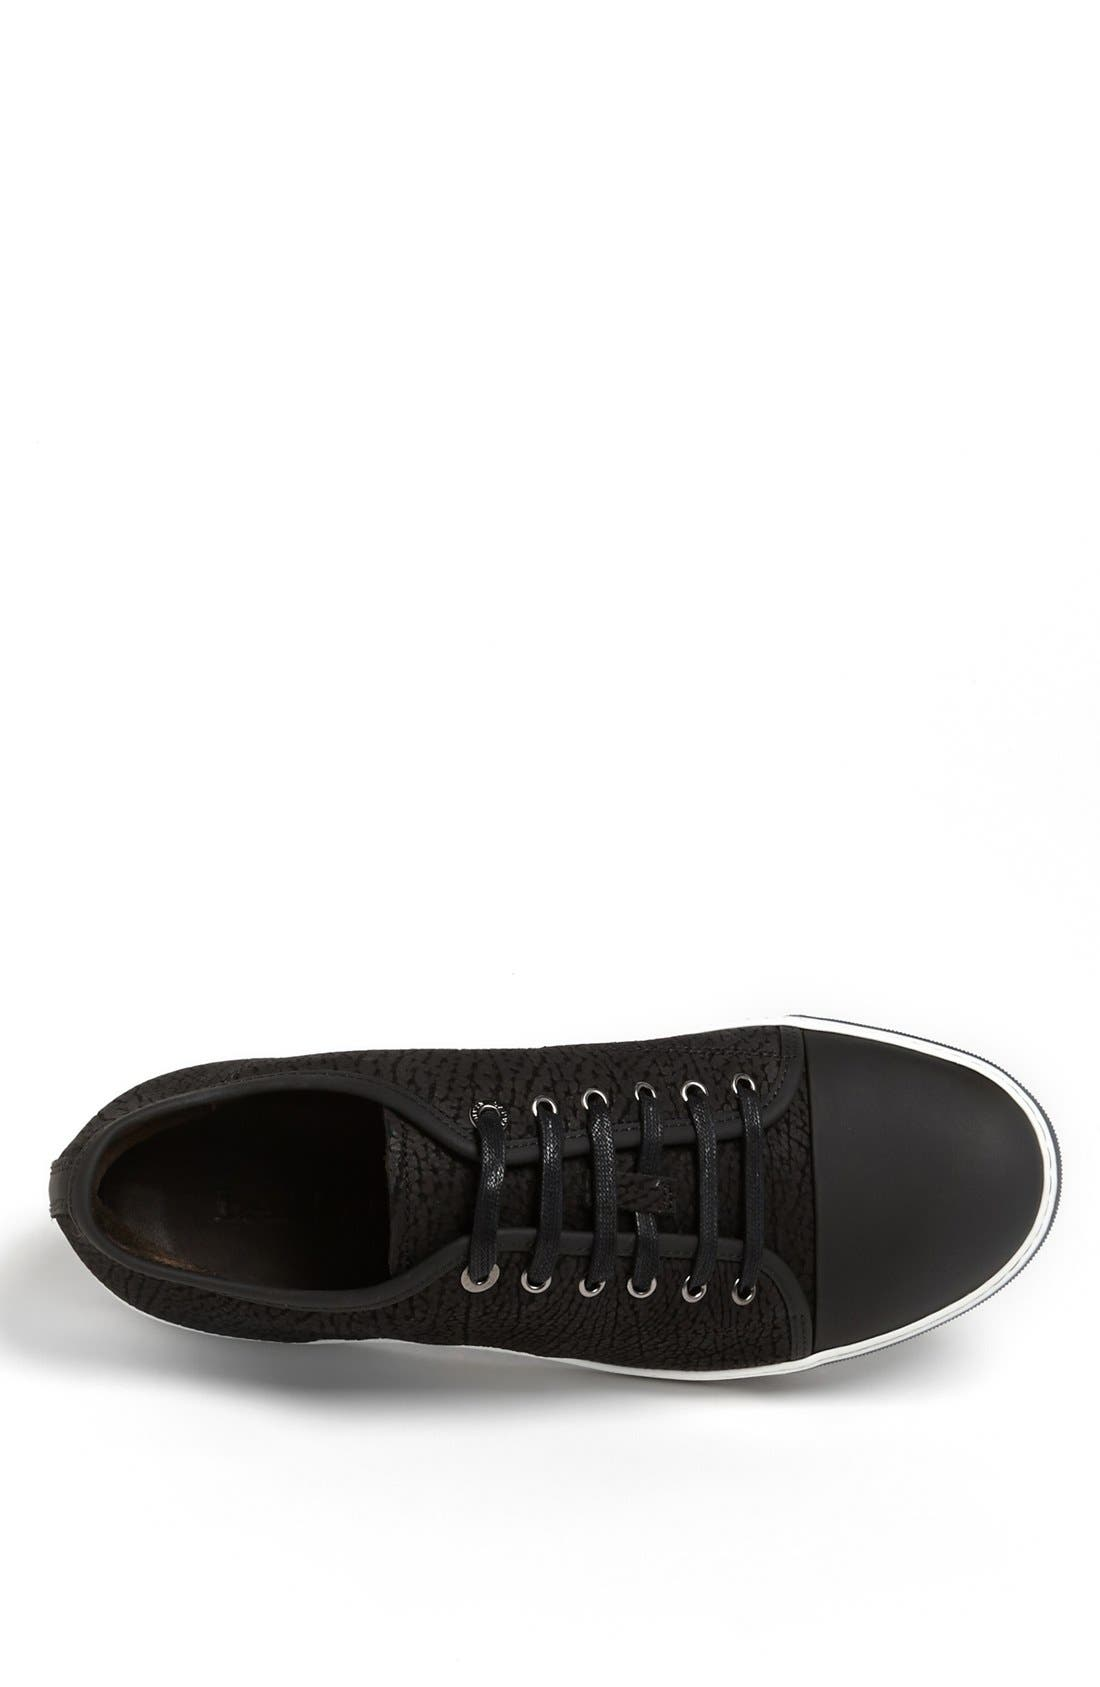 Alternate Image 3  - Lanvin Low Top Sneaker